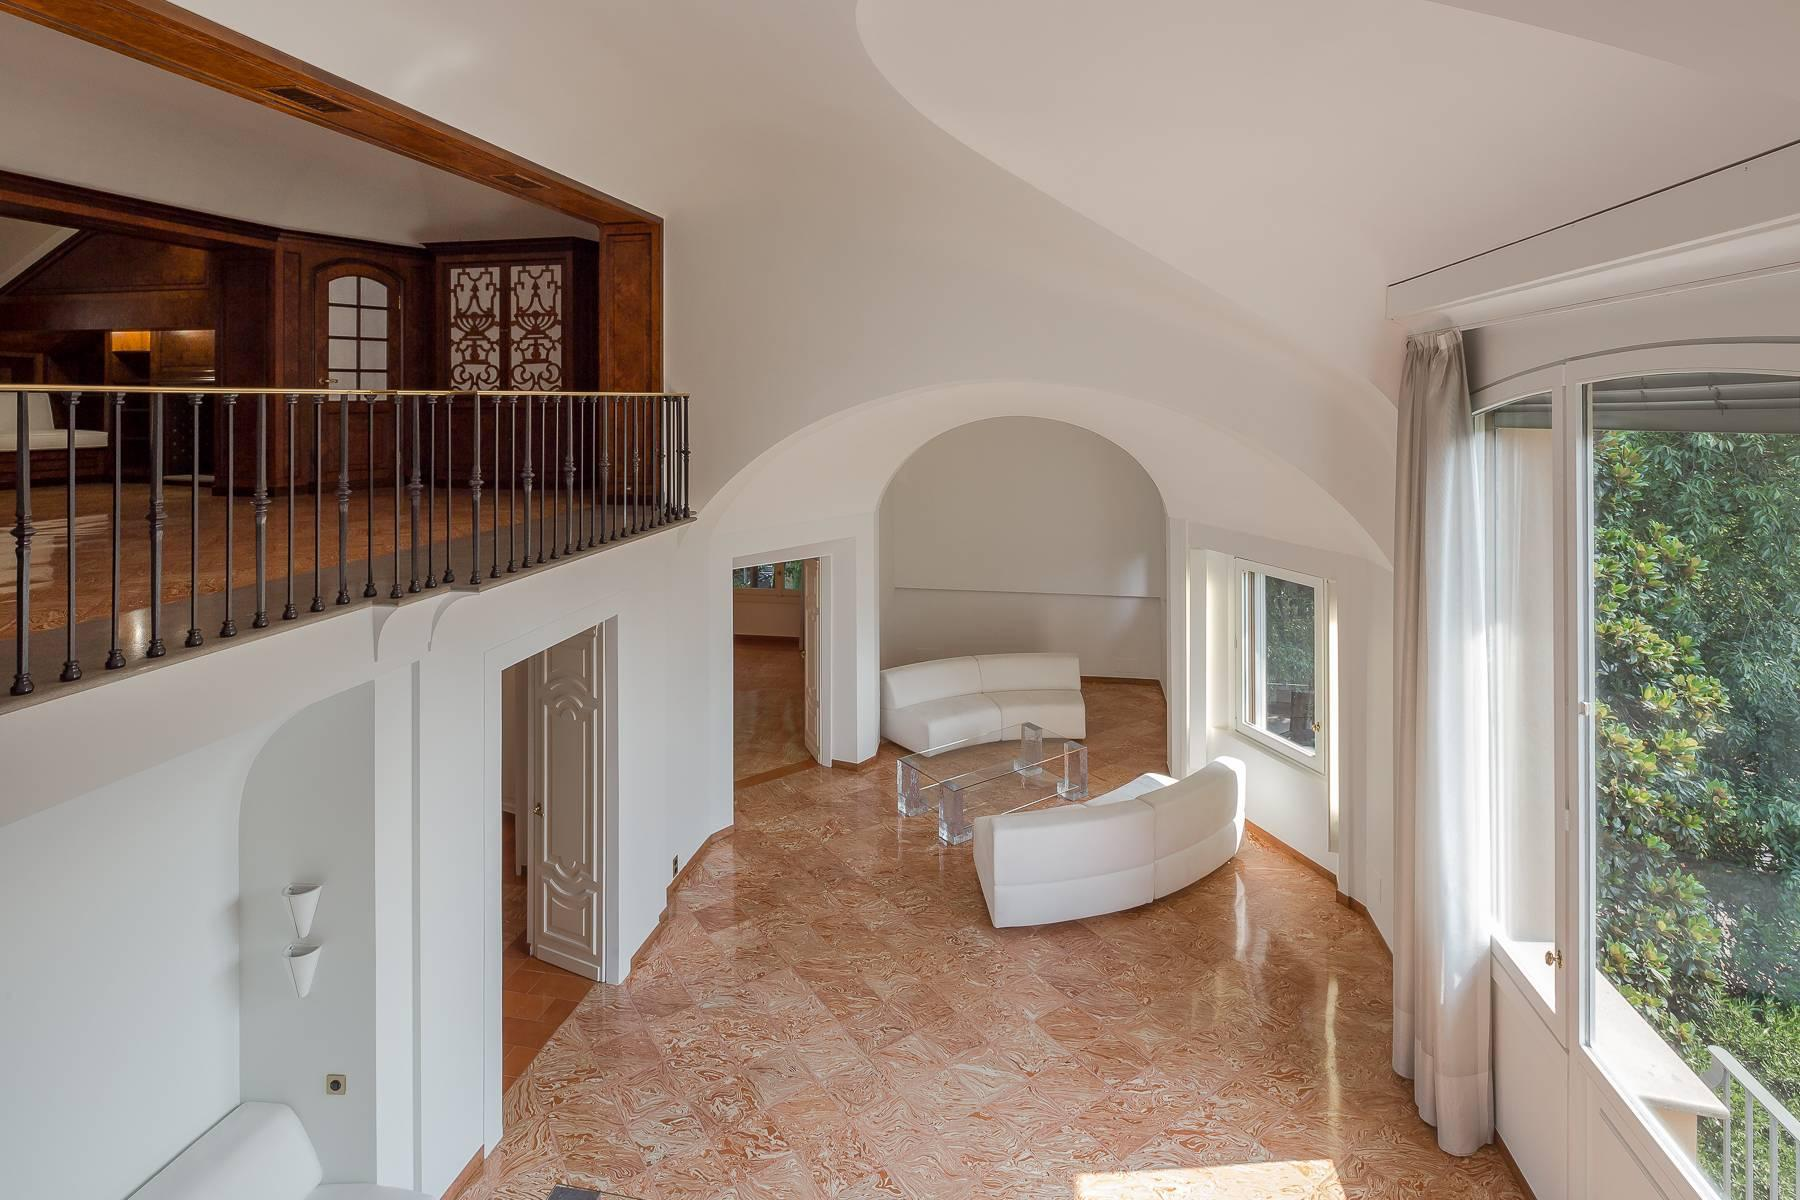 Inviting 482 sqm property with a view of the greenery in the XX Settembre / Tamburini area - 10